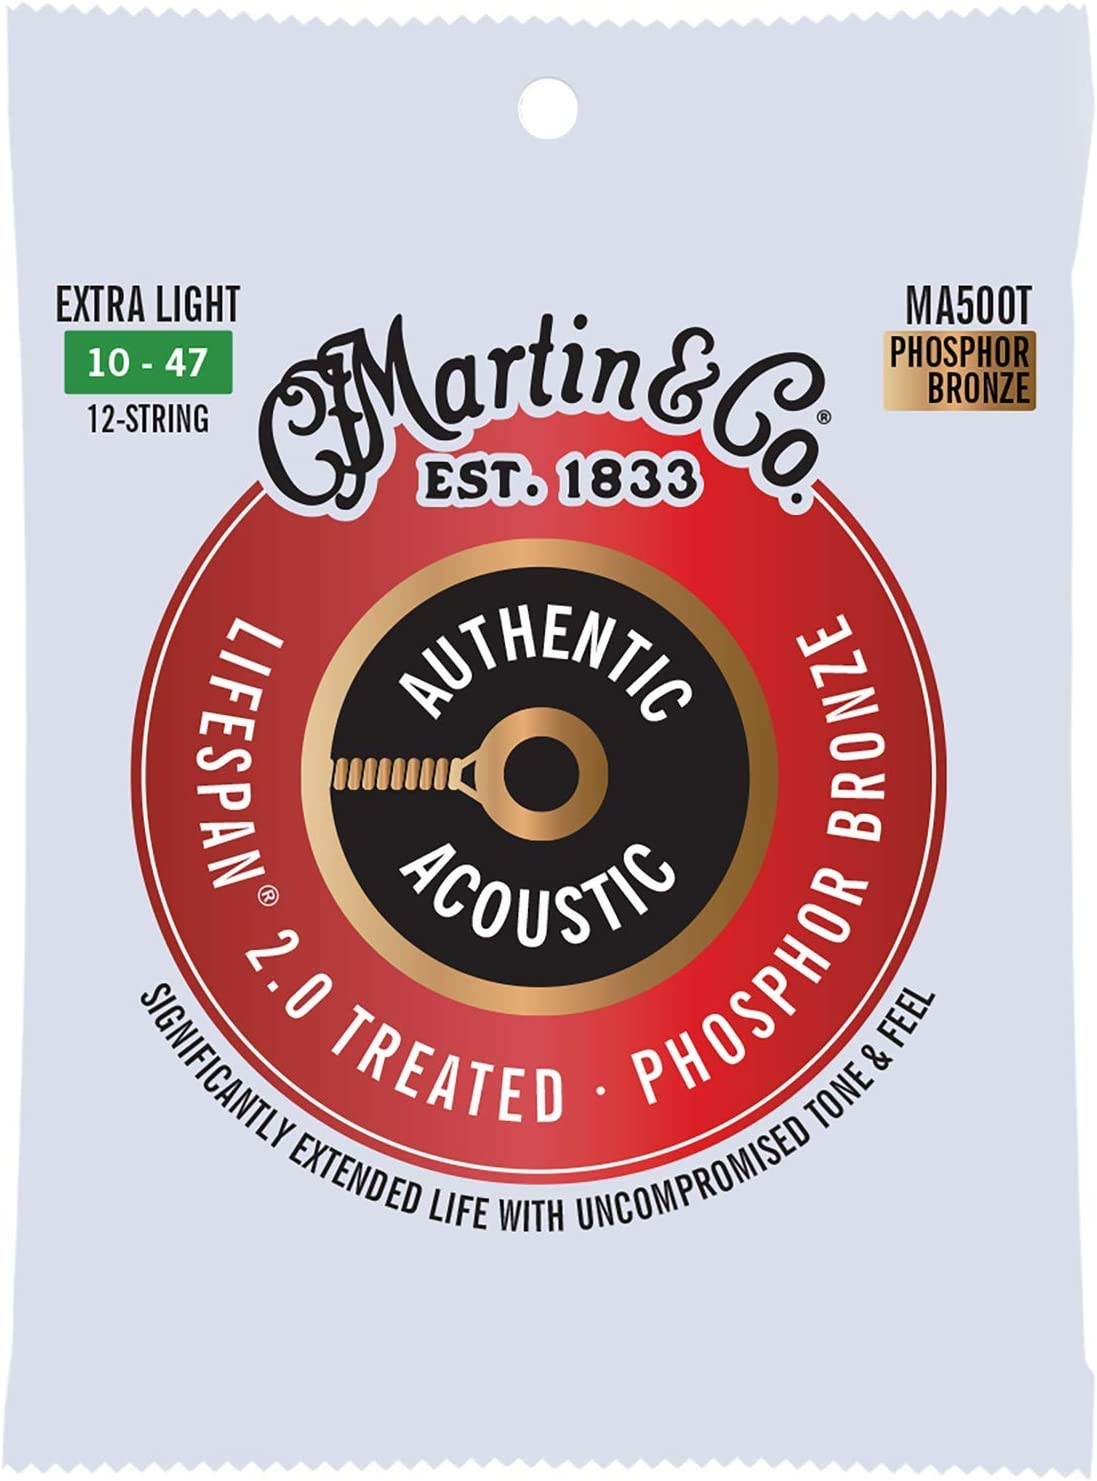 Max 56% OFF Martin Guitar Authentic Acoustic Max 58% OFF Lifespan Phosp MA500T 92 2.0 8